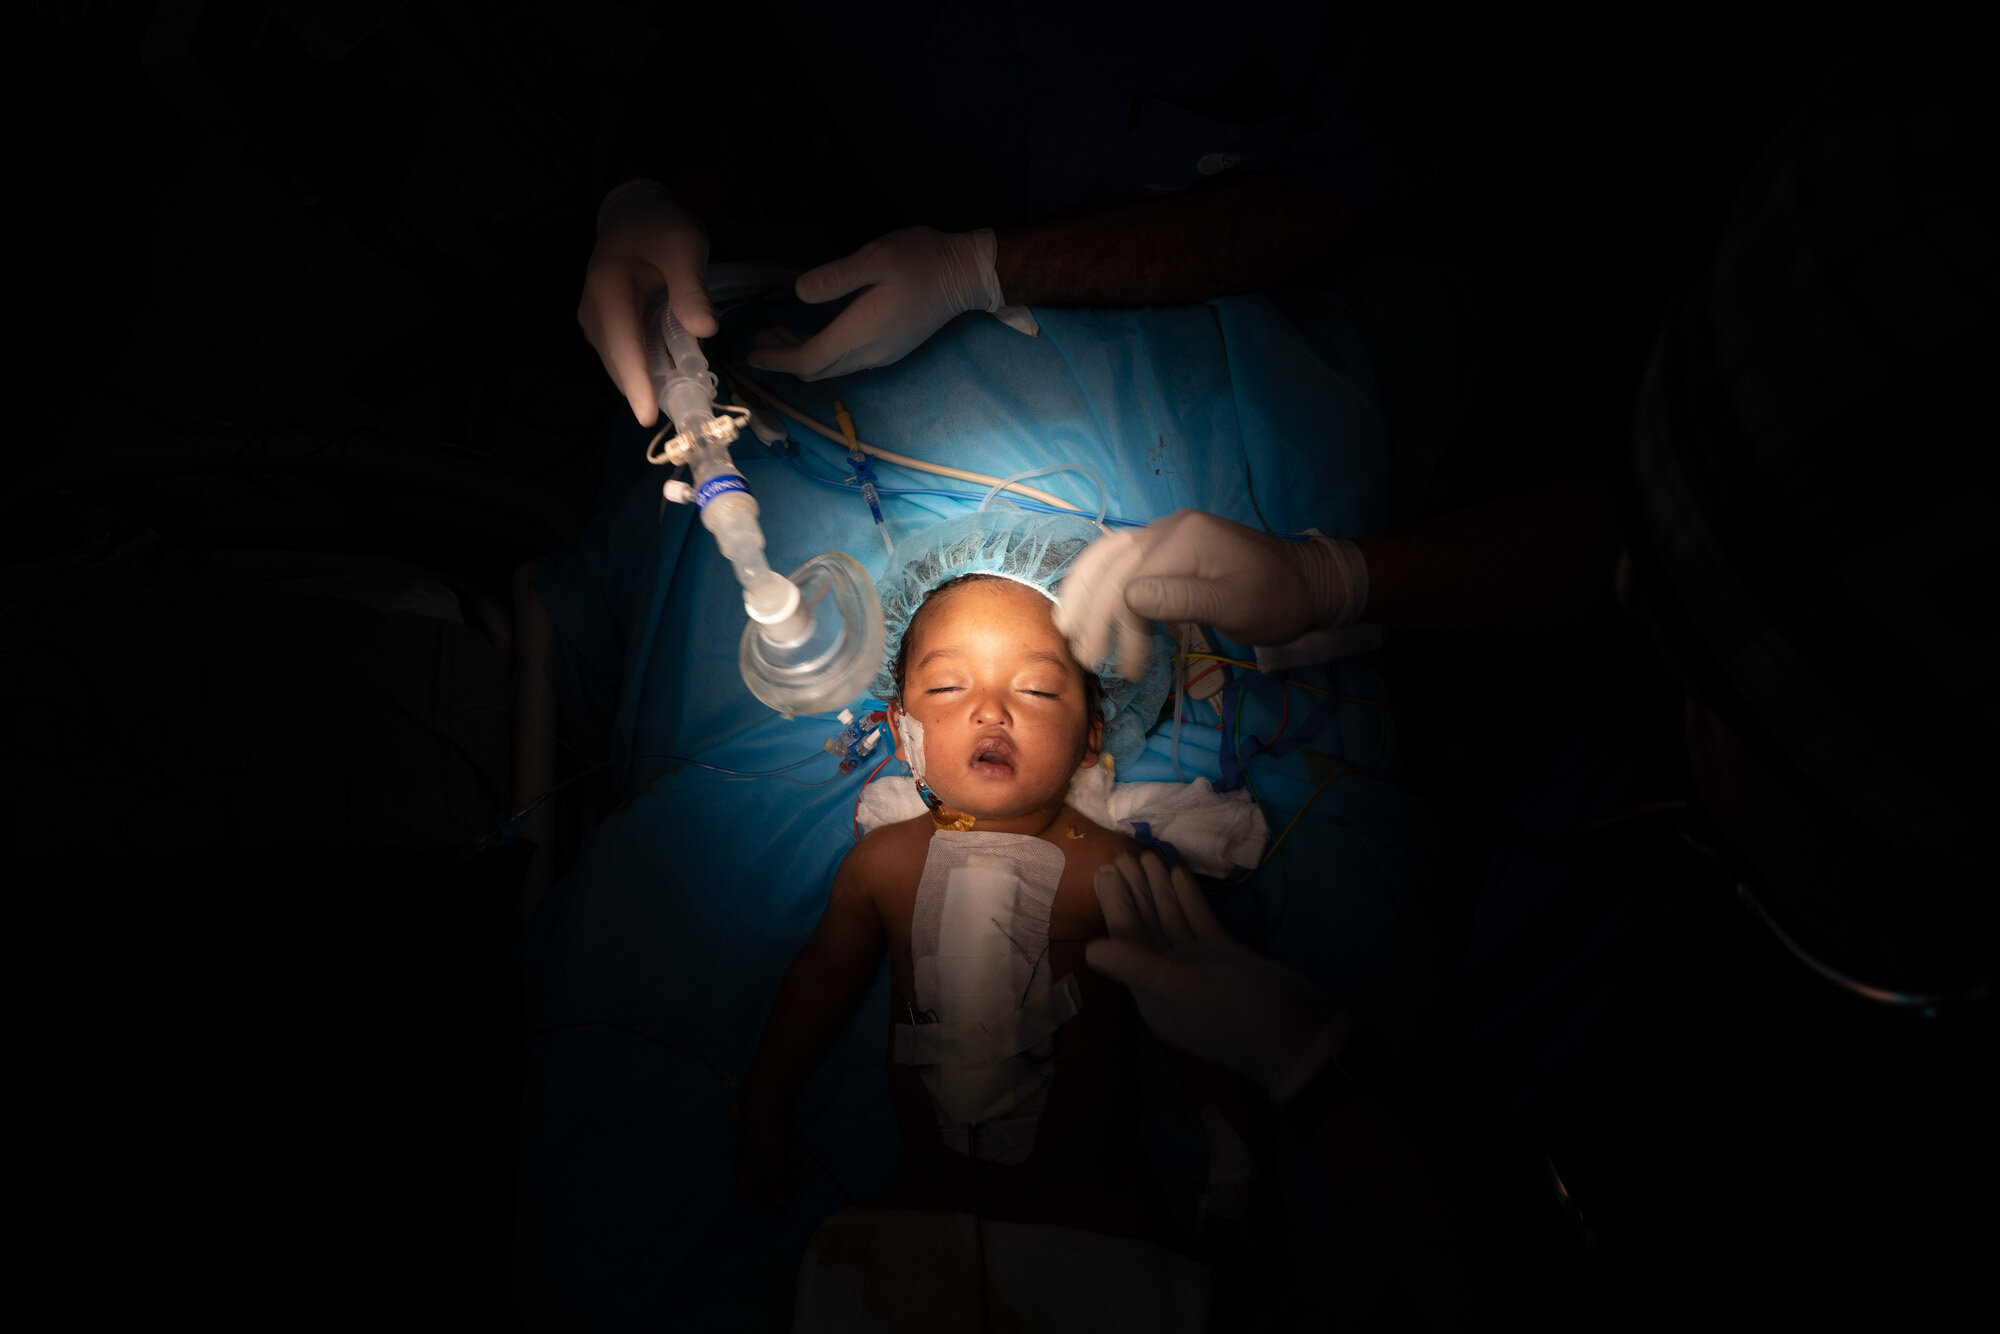 One-year-old Yazan has his oxygen mask removed after heart surgery at the Tajoura National Heart Center in Tripoli, Libya, on Feb. 27, 2020. Yazan's perilous trek from his small desert hometown culminated in a five-hour surgery. He is one of 1,000 children treated by Dr. William Novick's group since it first came to Libya after the 2011 uprising. (AP Photo/Felipe Dana)